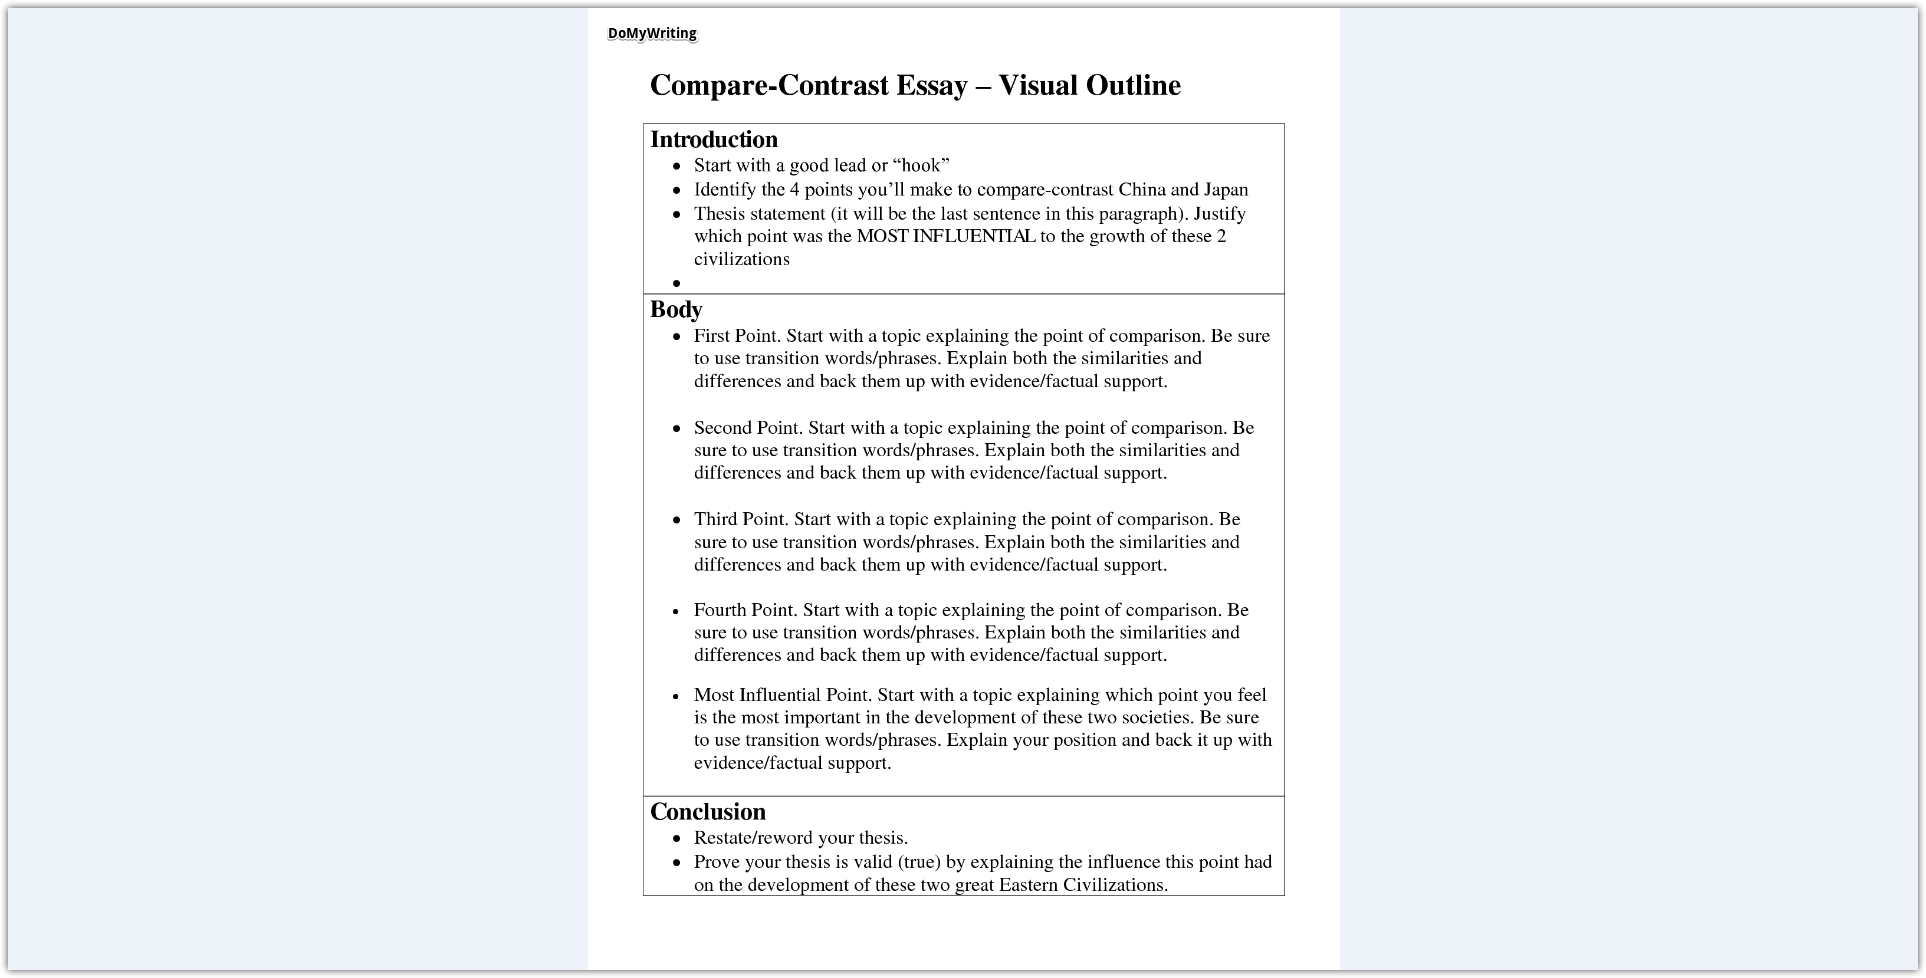 011 Compare And Contrast Essay Outline Fantastic Comparison Topics Middle School Title Ideas Thesis Full